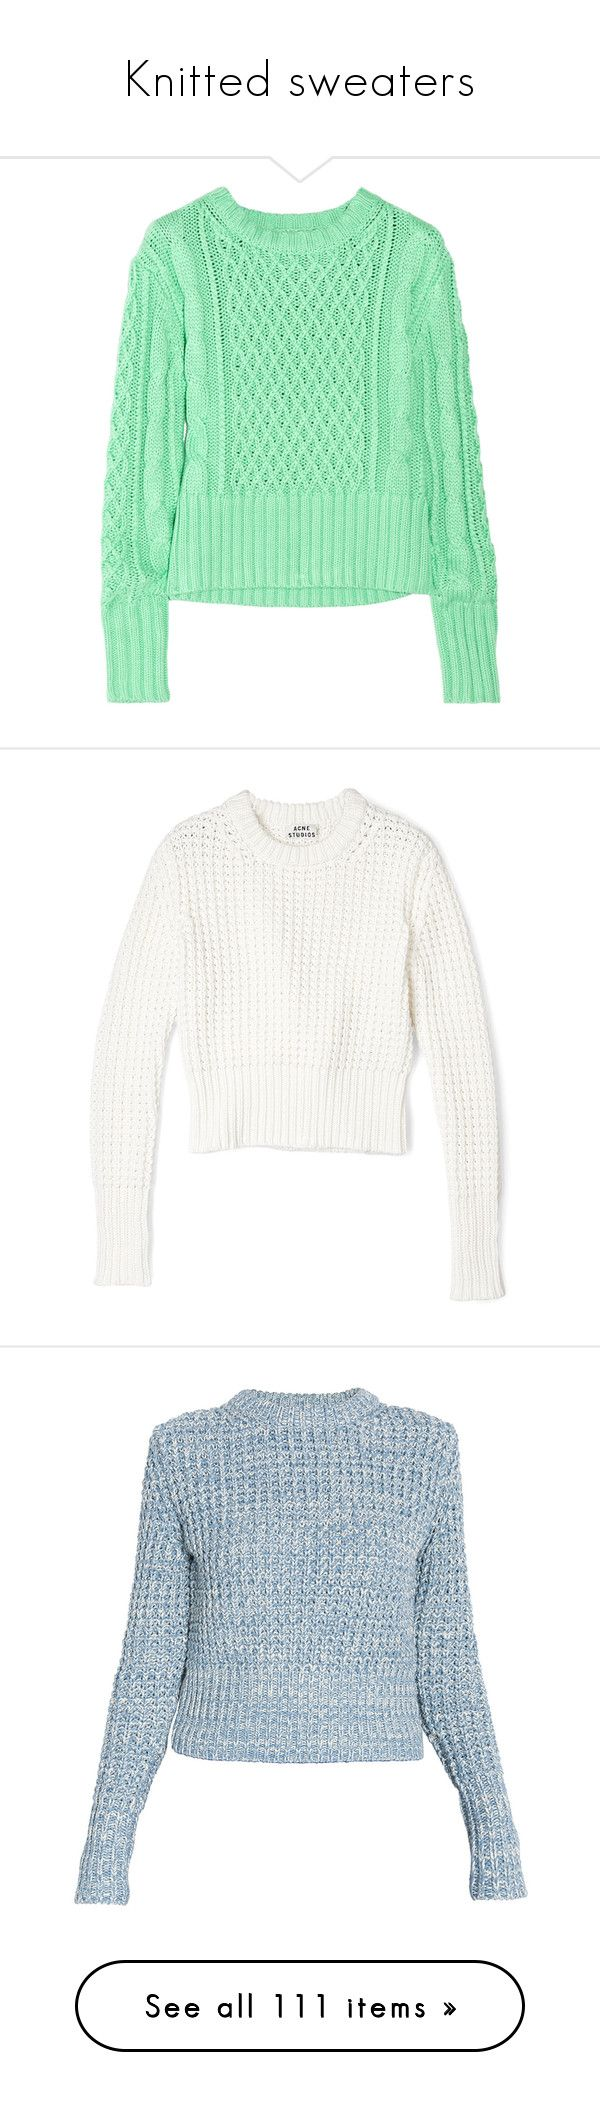 """Knitted sweaters"" by mars ❤ liked on Polyvore featuring sweaters, knitted, knittedsweaters, tops, shirts, jumpers, green cable knit sweater, mint green top, green shirt and mint shirt"